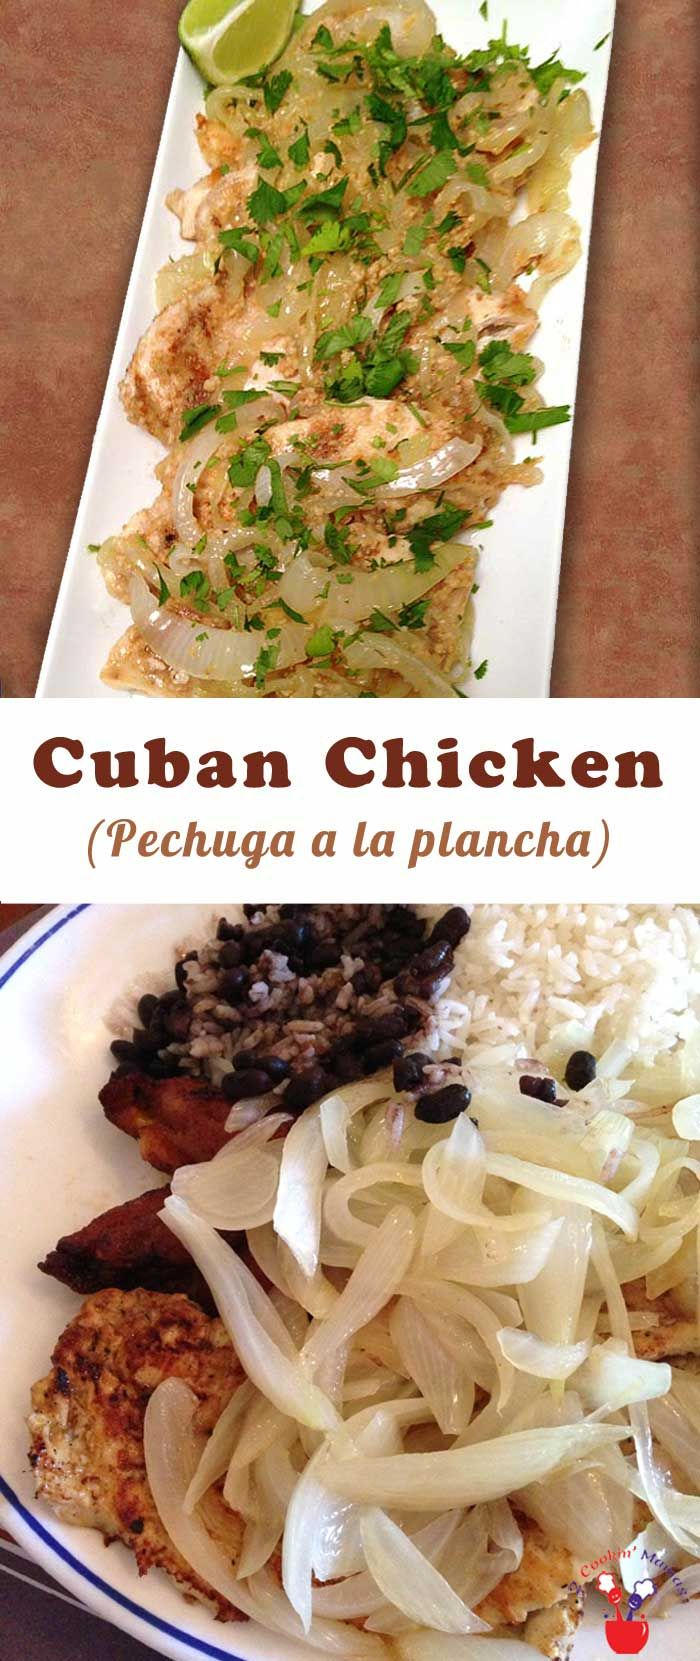 Homemade Cuban Chicken that tastes just like your favorite restaurant's Pechuga a la Plancha! Some lime, cilantro & sauteed onions lend that special flavor. via @2CookinMamas